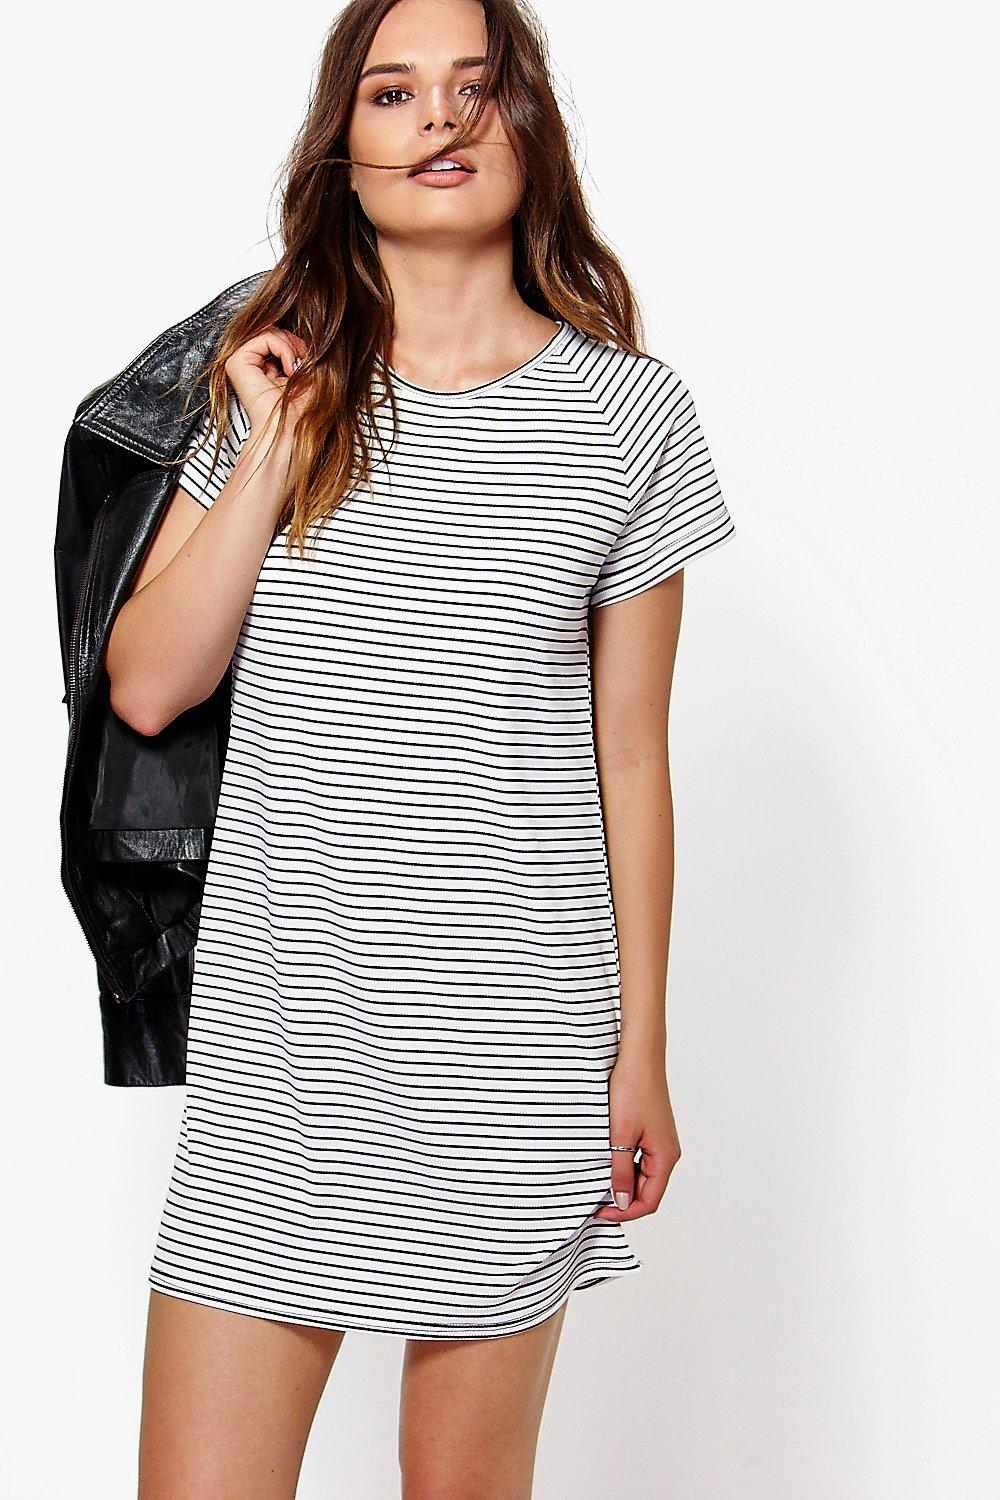 97674d03a8548 Candy T-Shirt Dress In Stripe Print | Boohoo